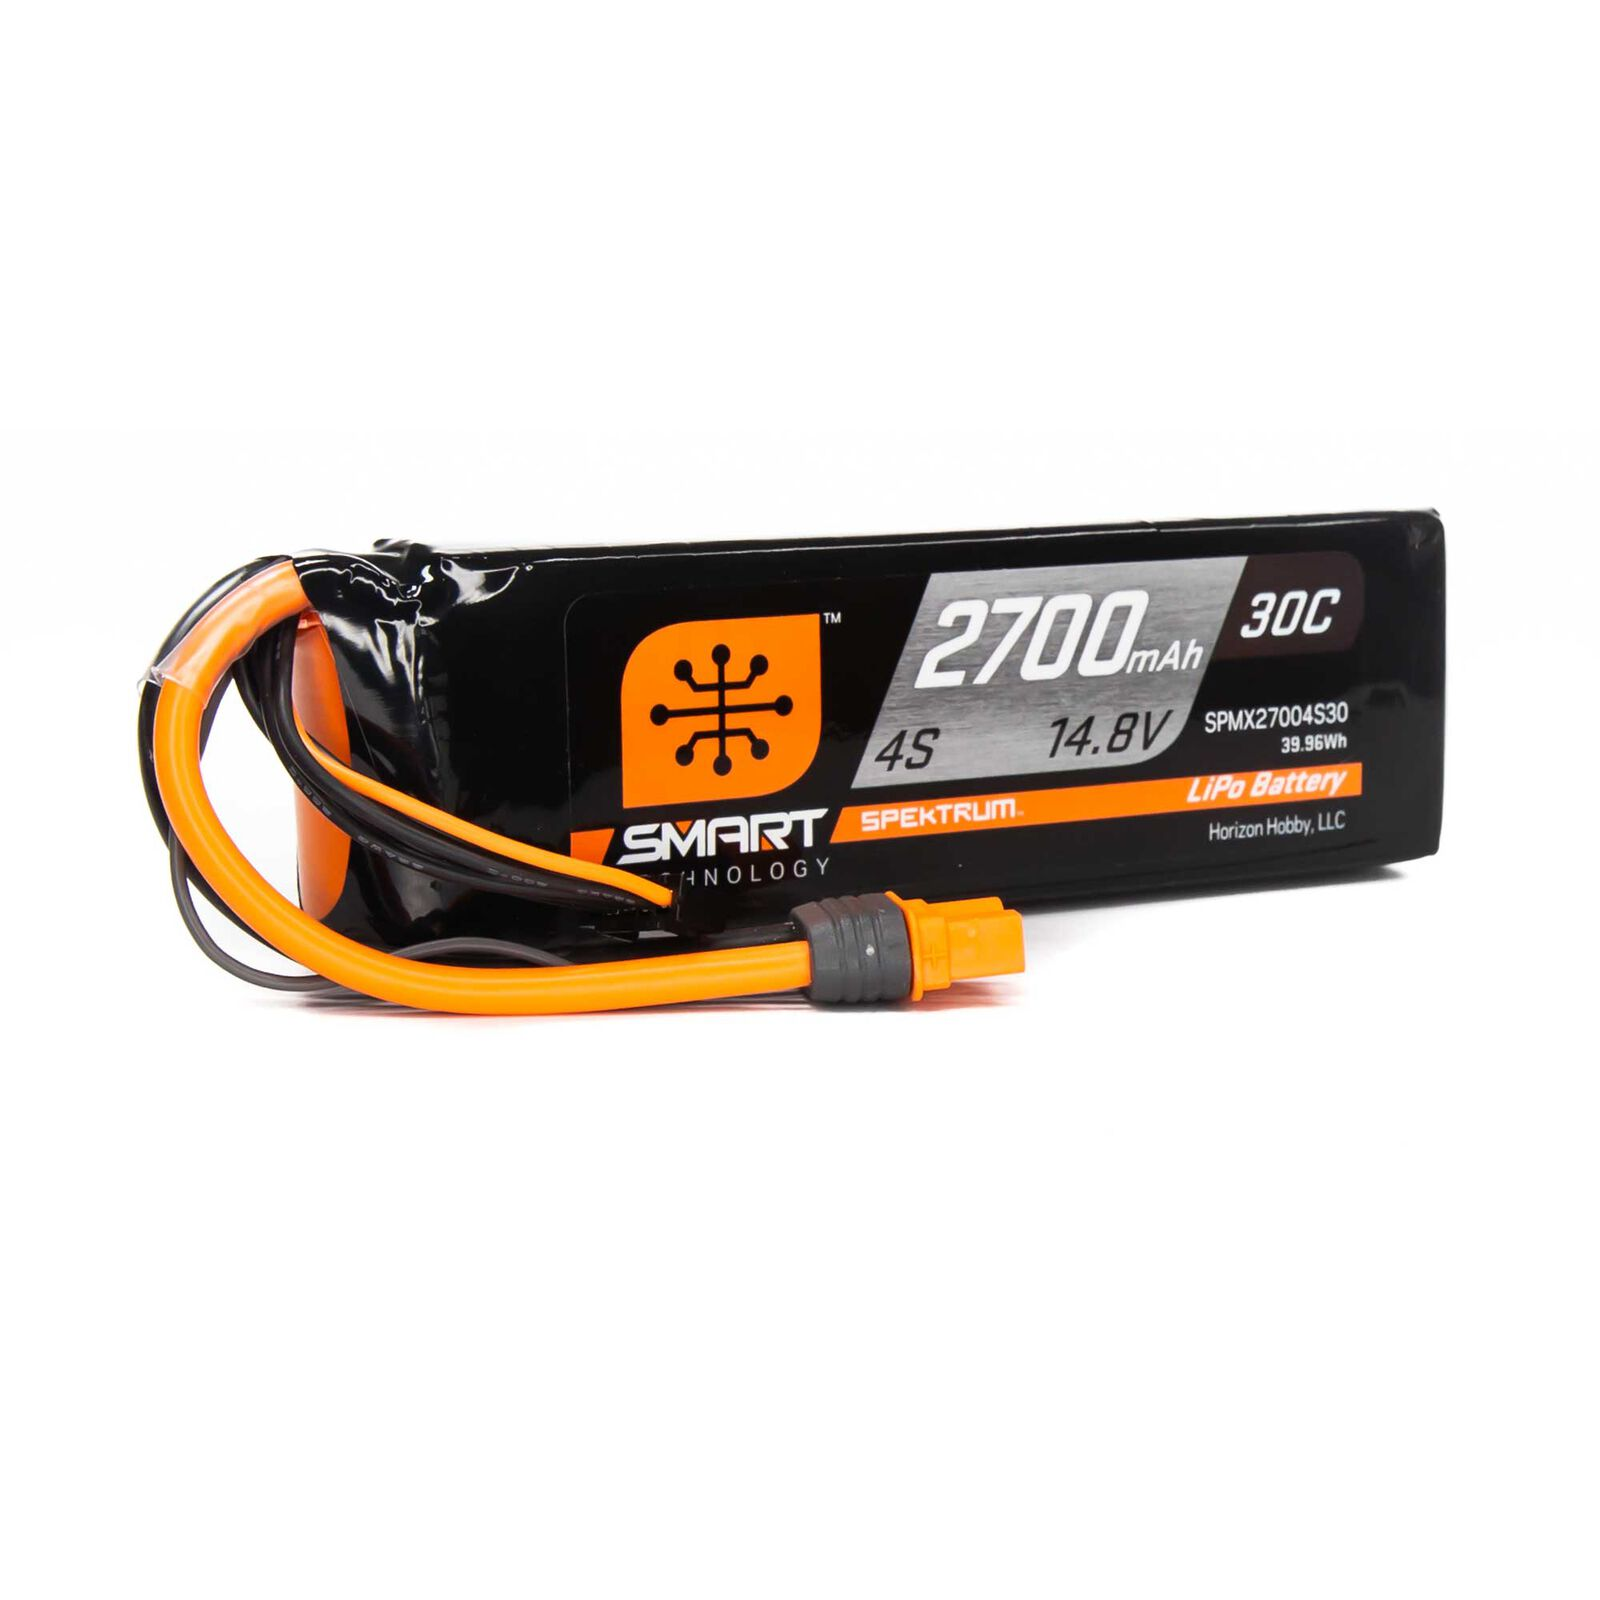 14.8V 2700mAh 4S 30C Smart LiPo Battery, IC3